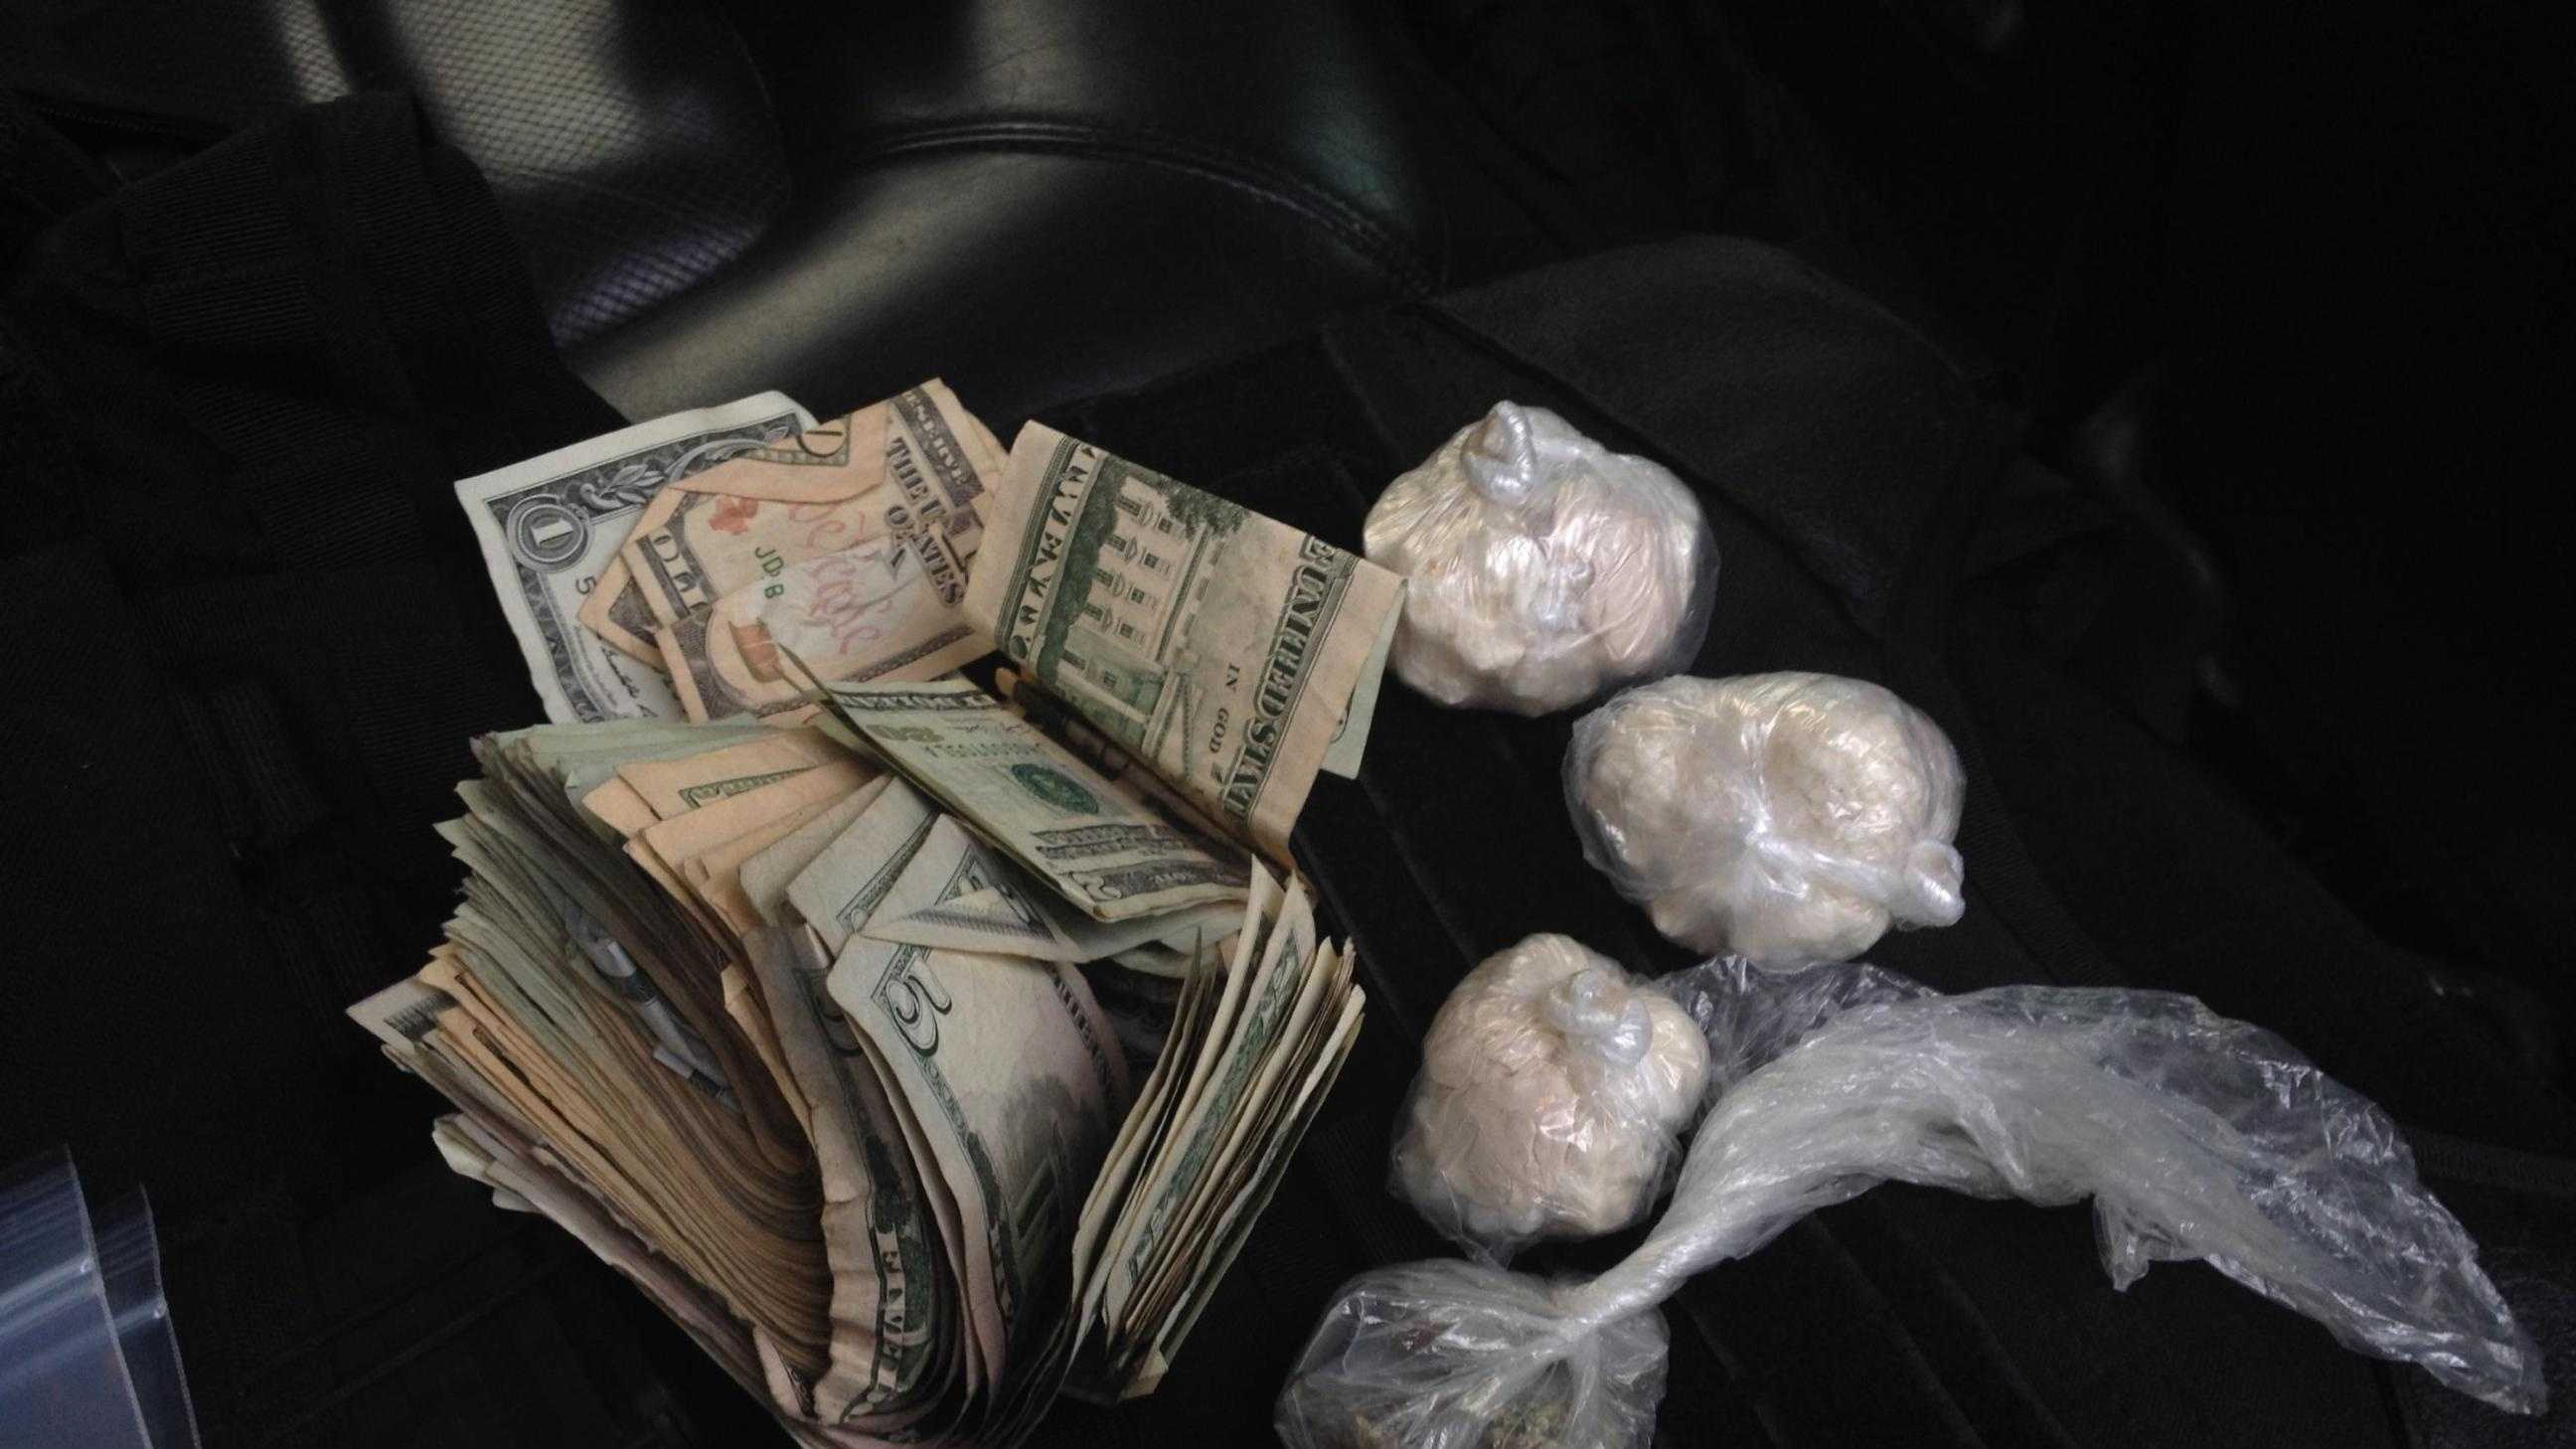 In all, police seized 128 grams of crack cocaine, which has a street value of $18,500, 17.8 grams of heroin, which has a street value of $1,400, 6.5 grams of marijuana, which has a street value of $100, 7 Alprazolam pills, which has a street value of $70, 7 Oxycodone pills, which has a street value of $105, and cash totaling $9,099.